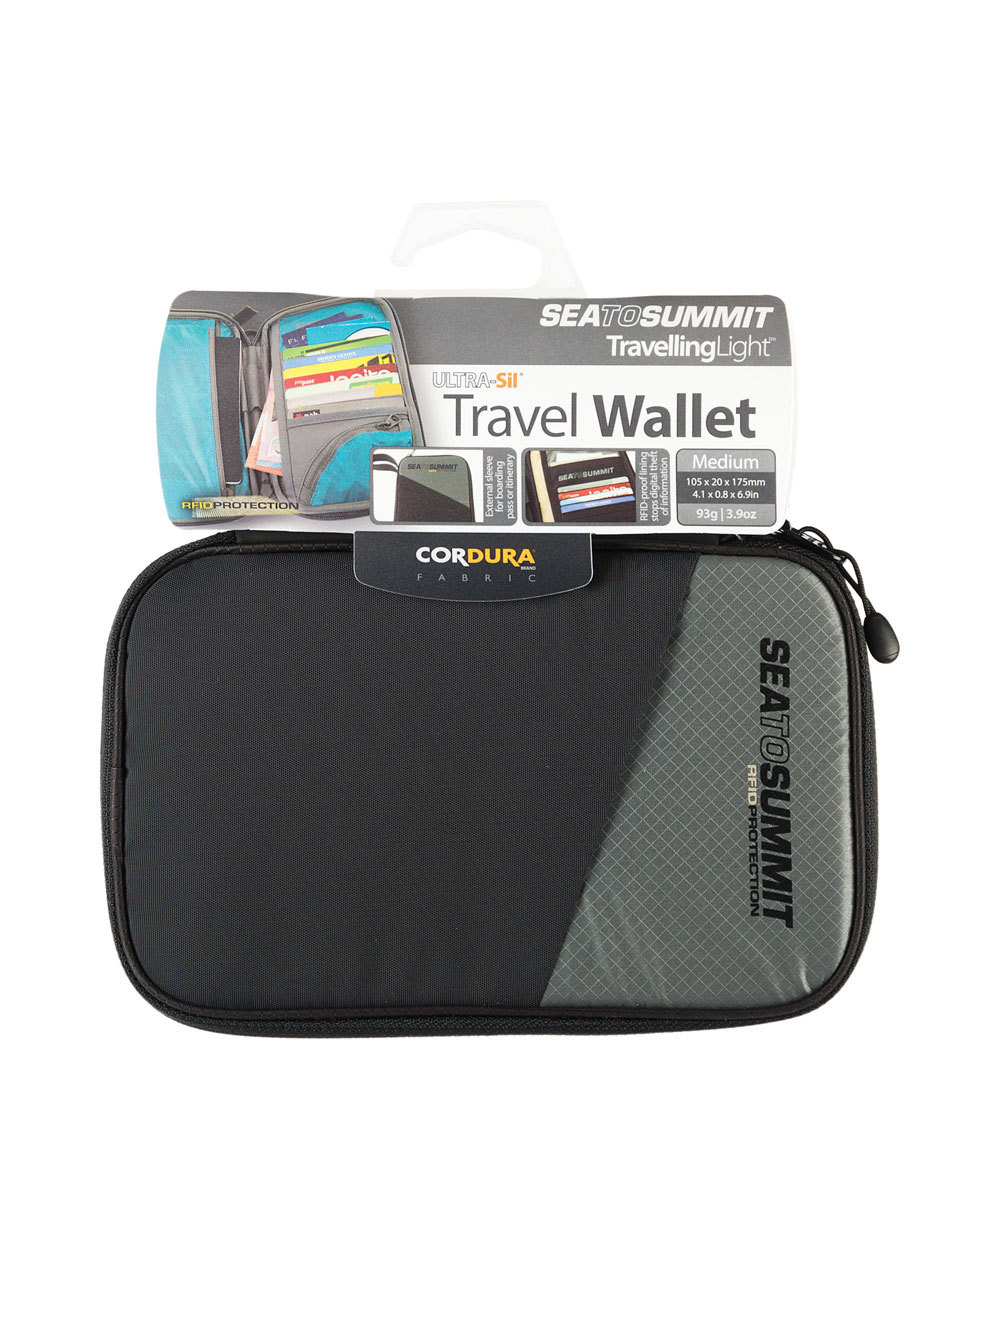 STS-Travel-Wallet-RFID-black.jpg